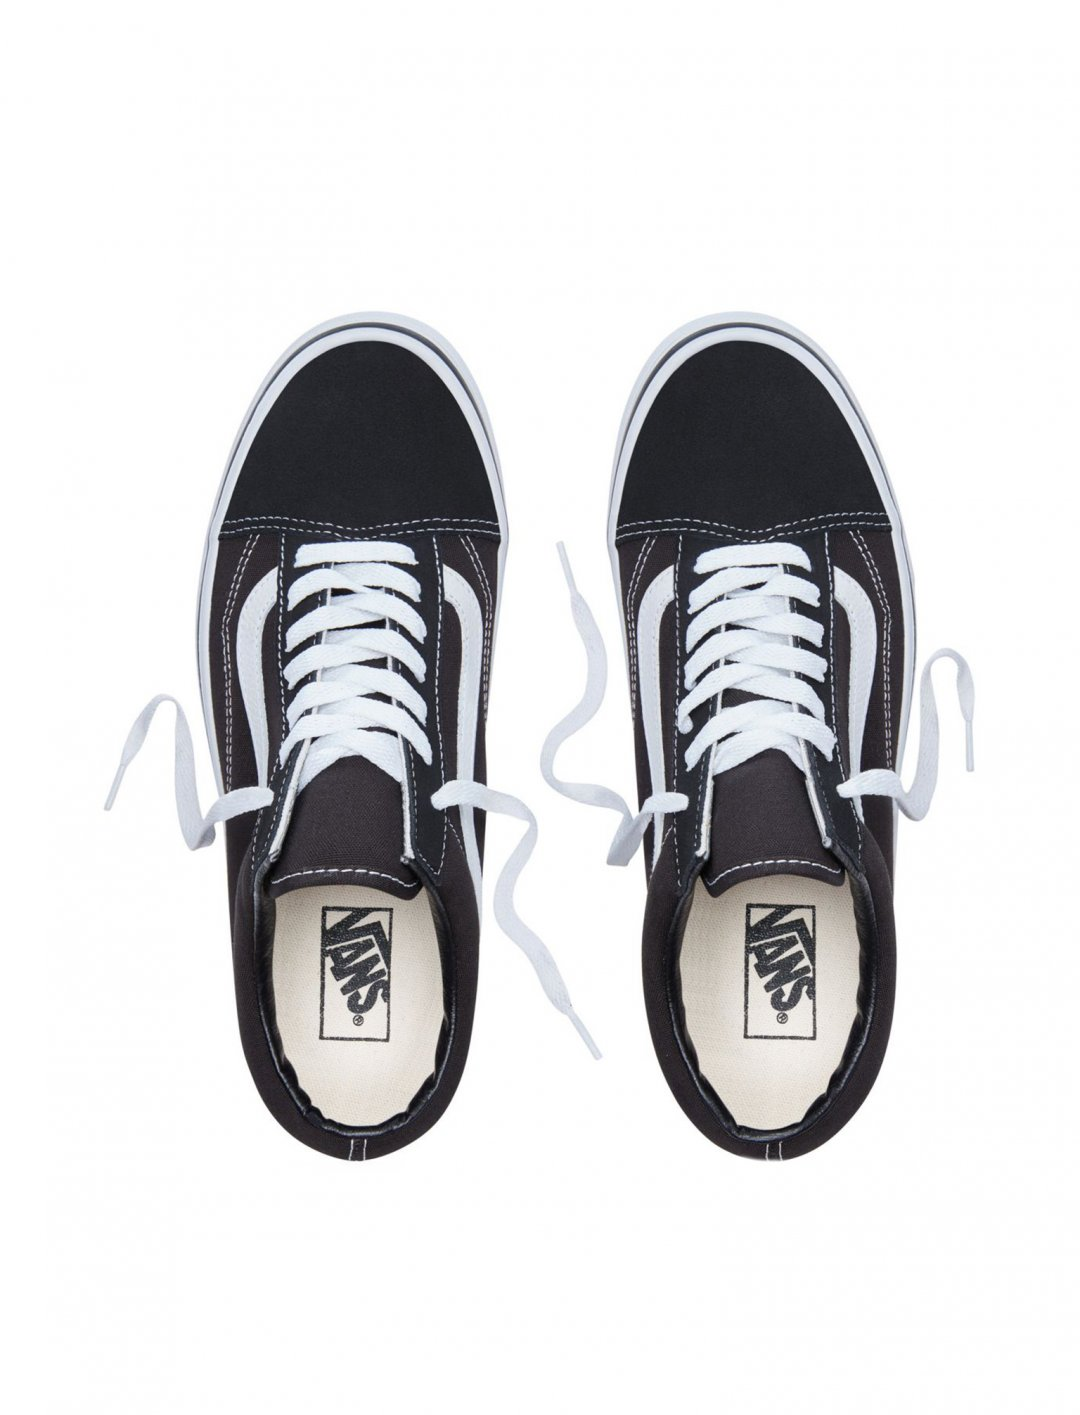 "G-Eazy's Old Skool Shoes {""id"":12,""product_section_id"":1,""name"":""Shoes"",""order"":12} Vans"